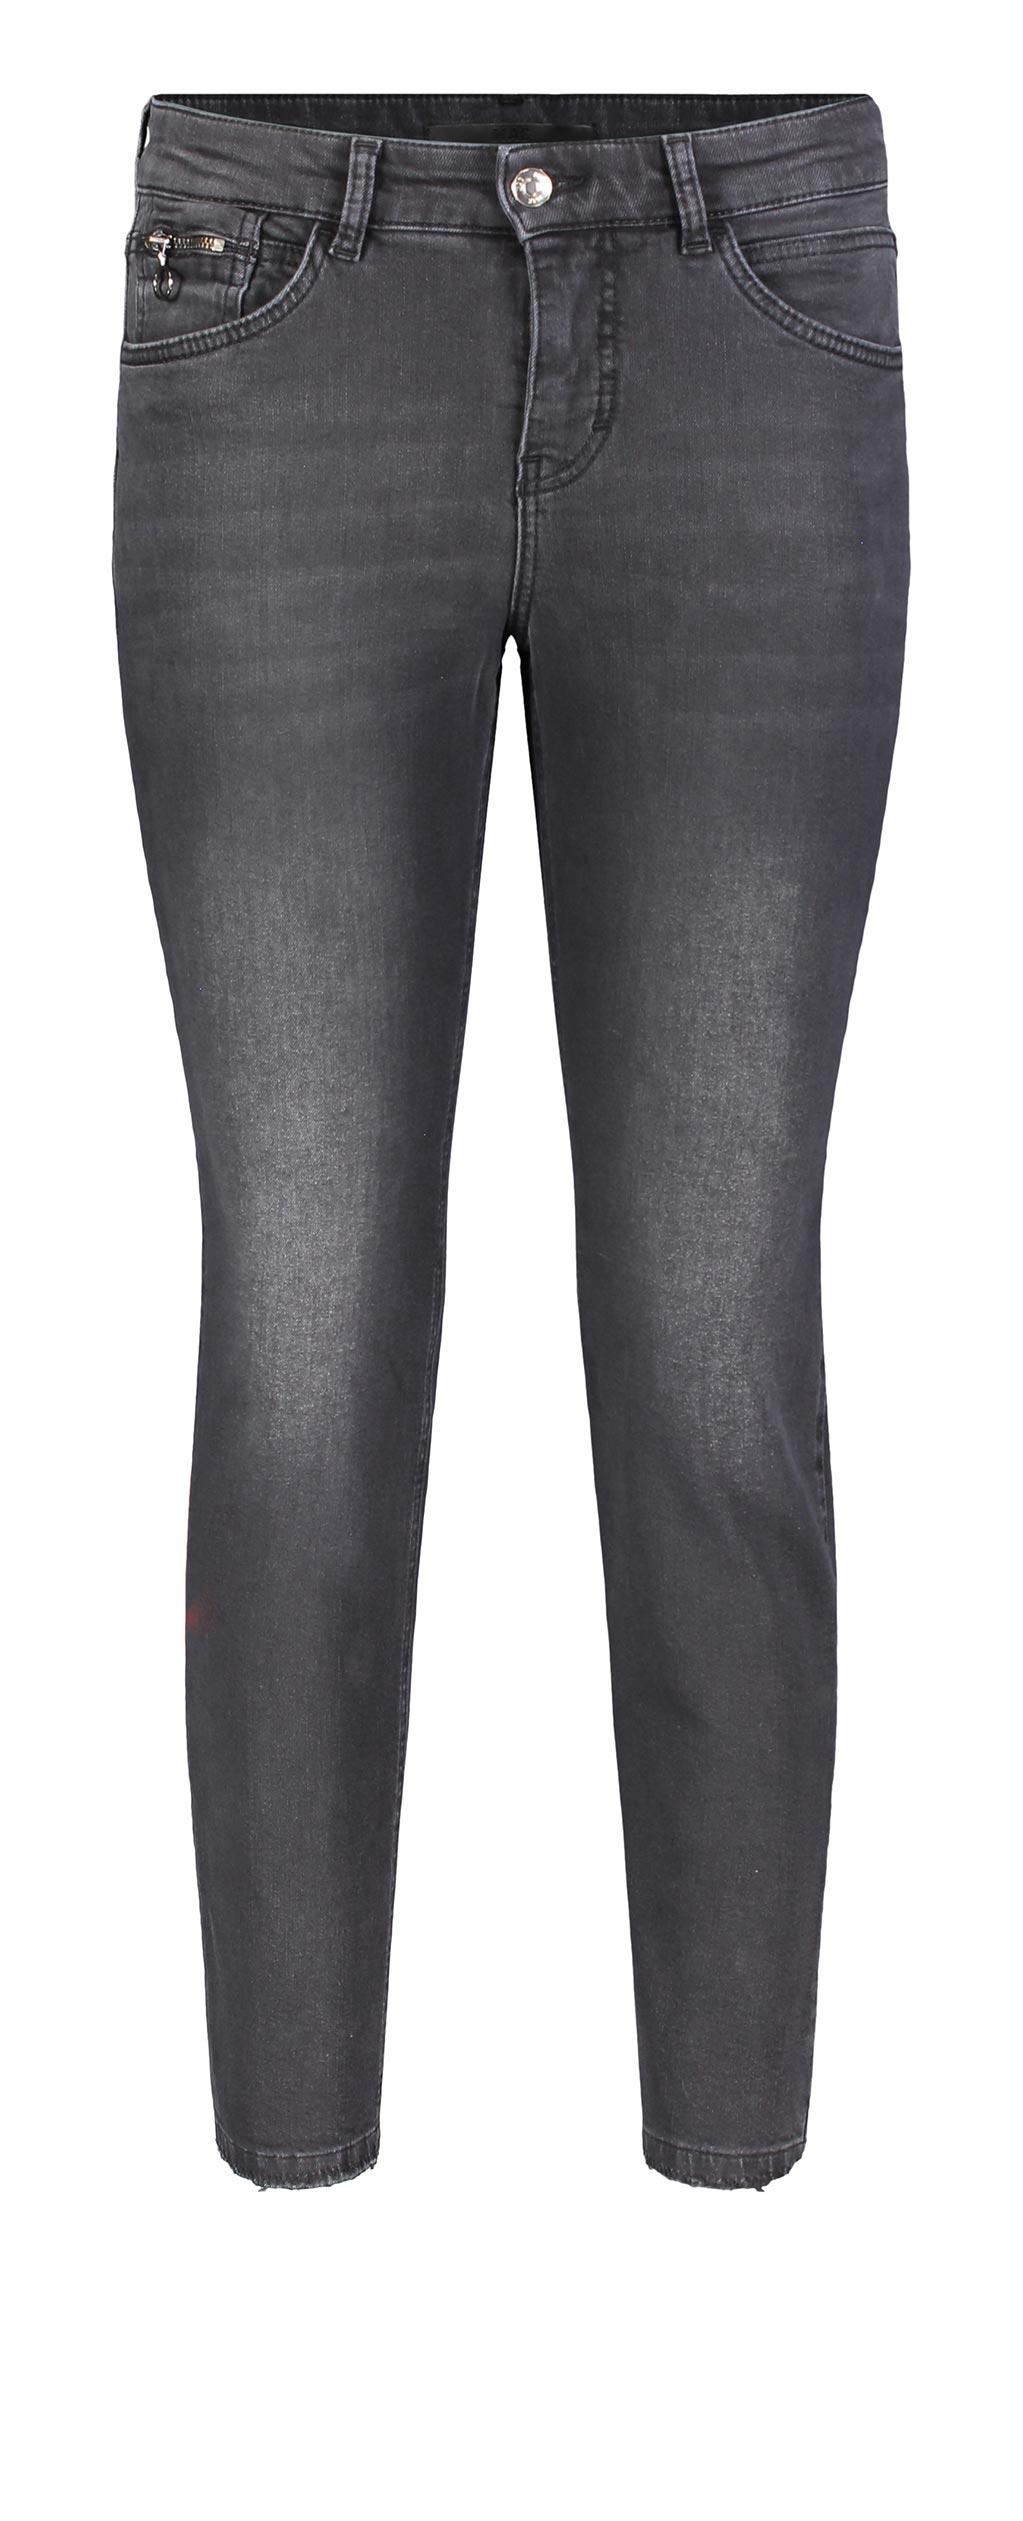 Mac Jeans Jeans Mac Dream Slim 5943 Jeans D966 Anthracite izzi-of-baslow